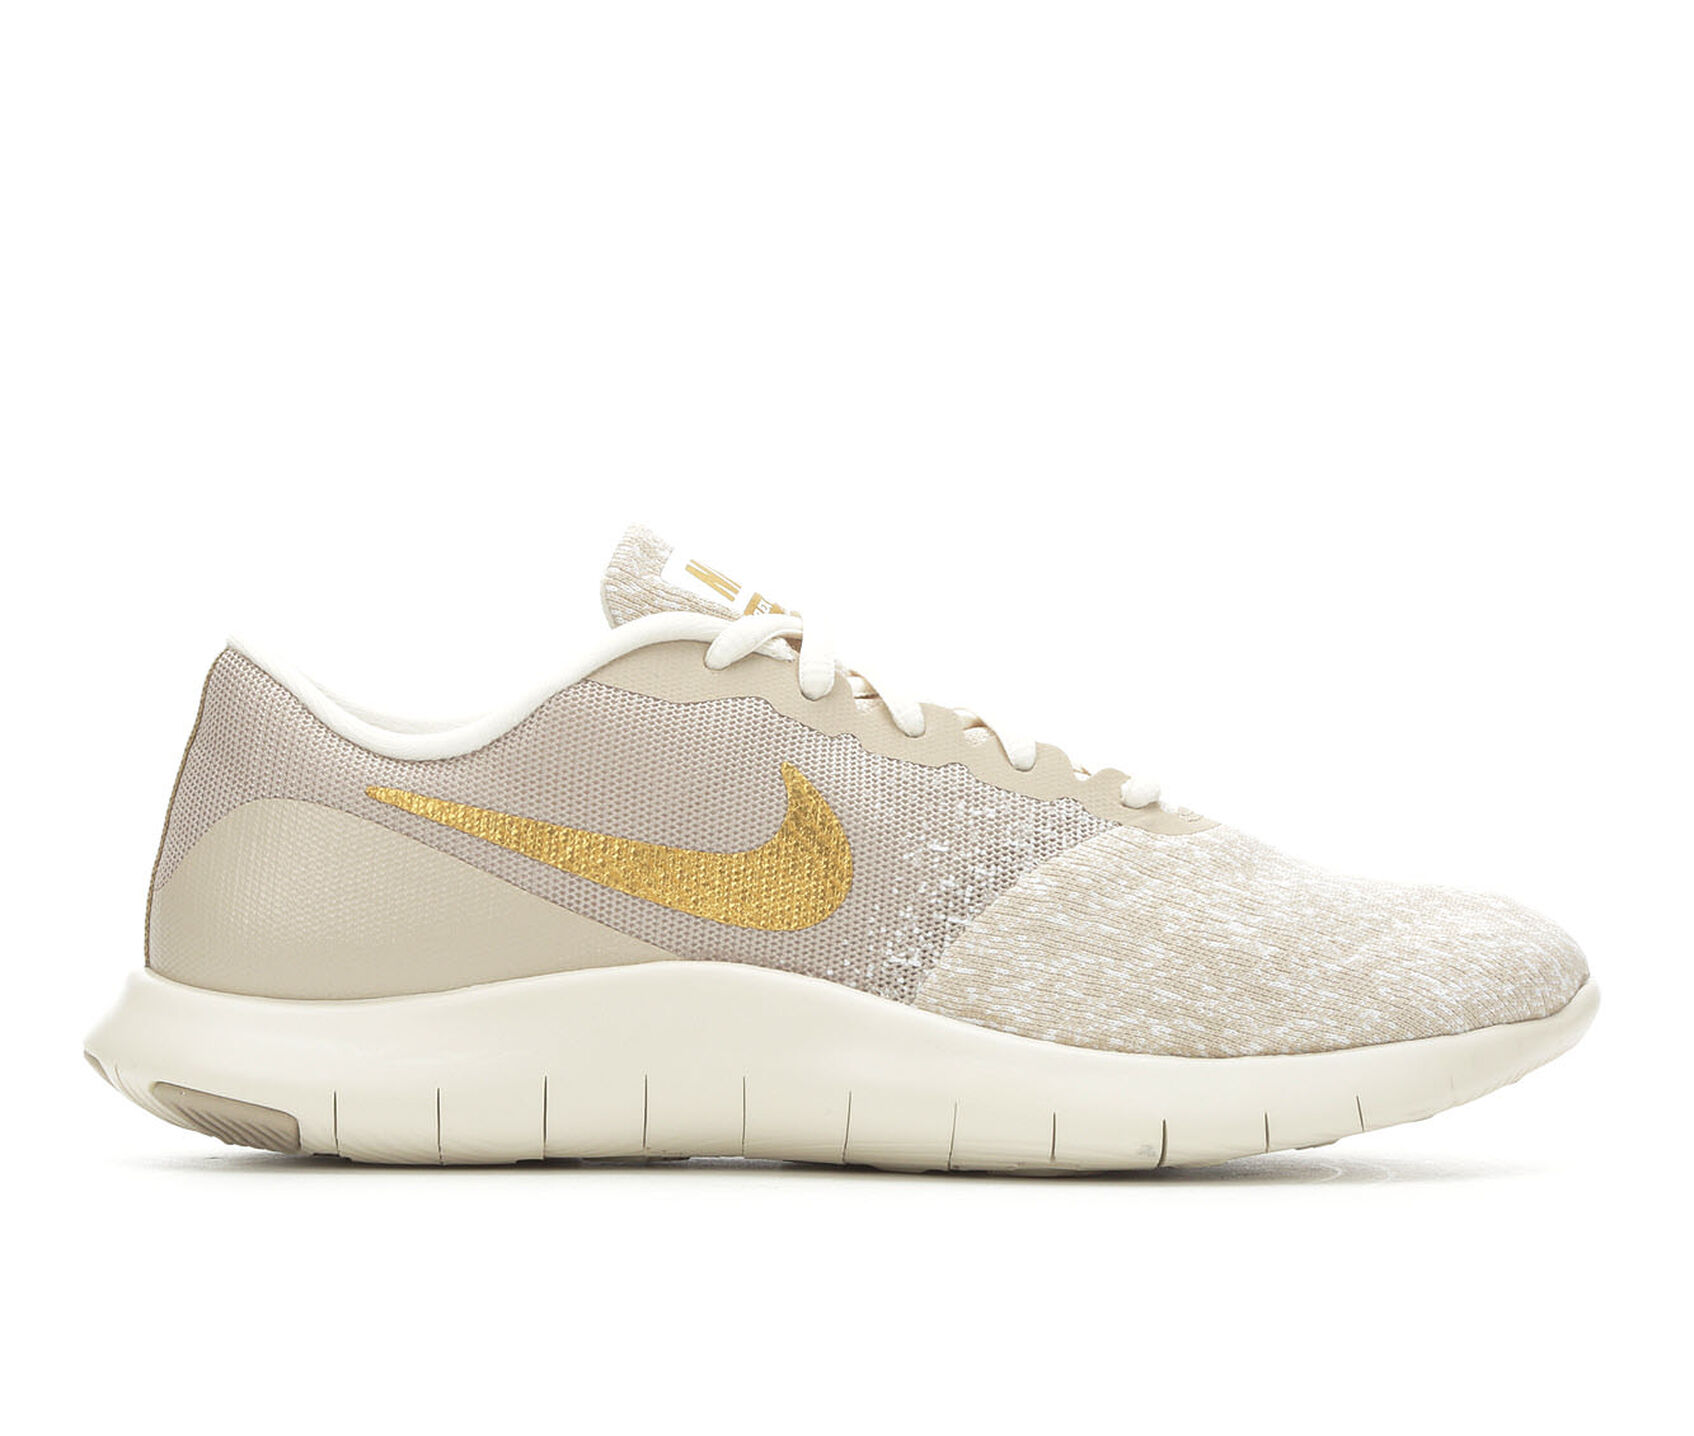 a2b365e5a6f0b Women's Nike Flex Contact Running Shoes | Shoe Carnival